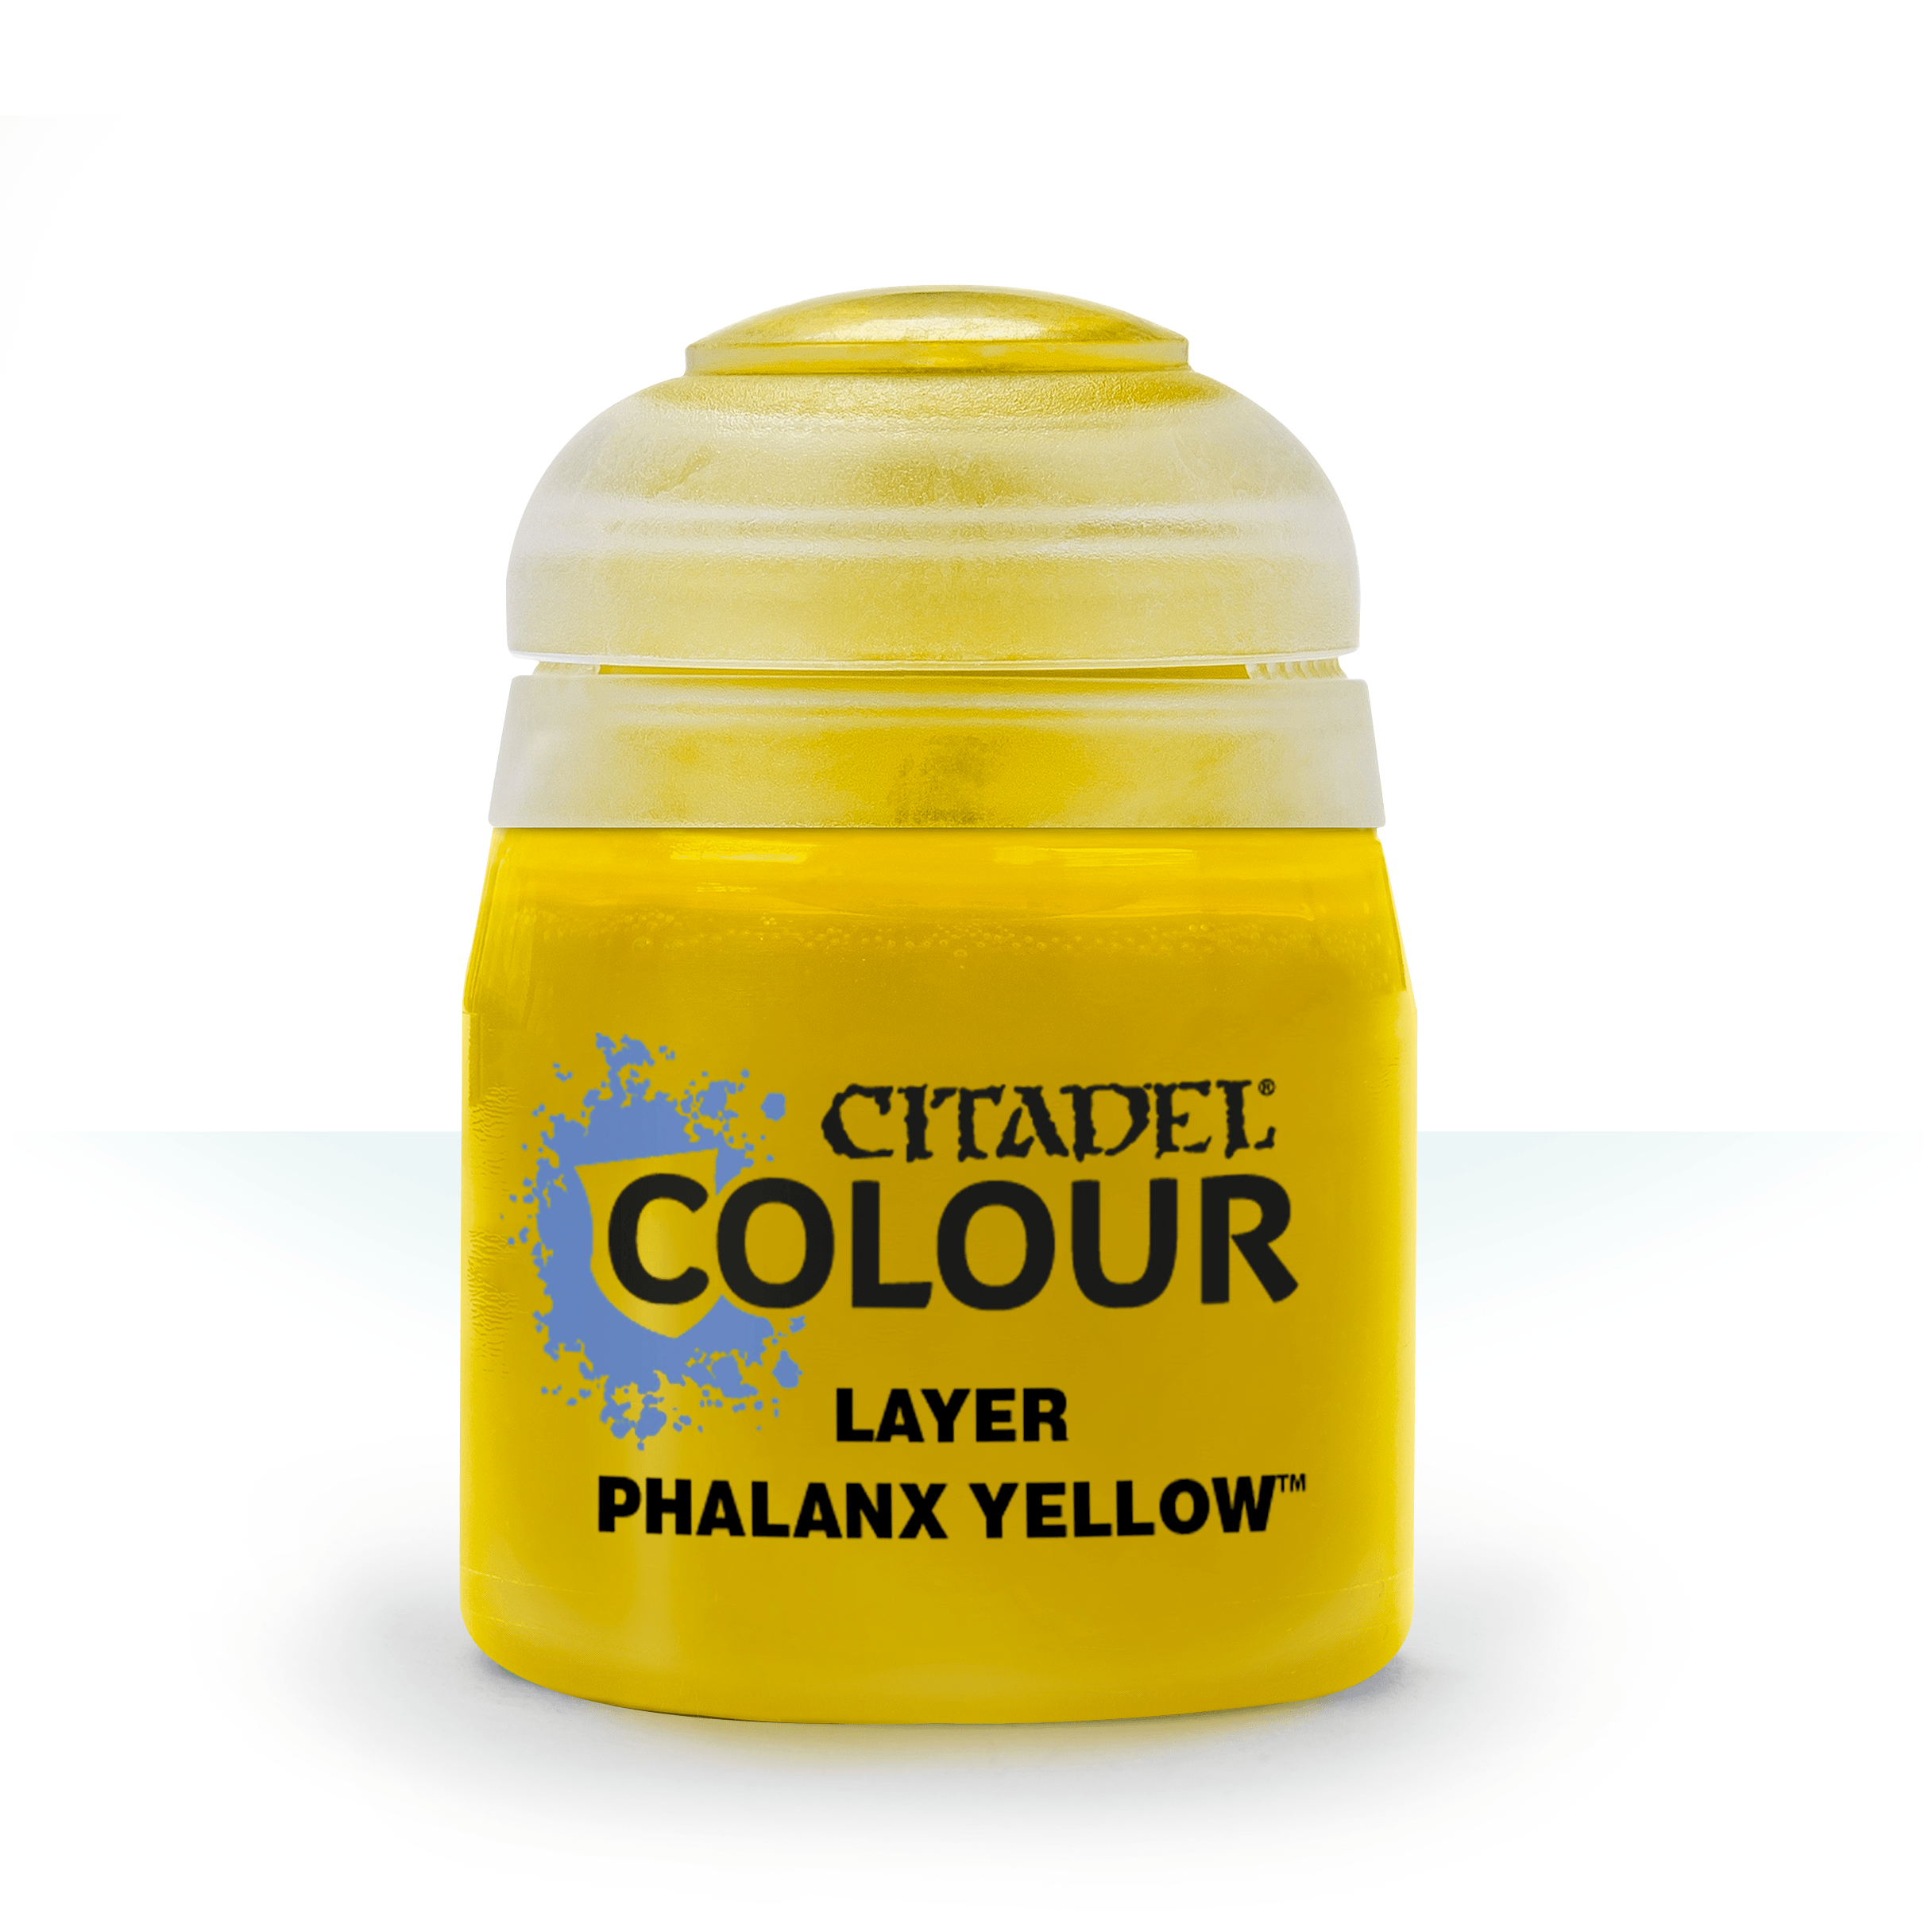 Citadel Layer - Phalanx Yellow